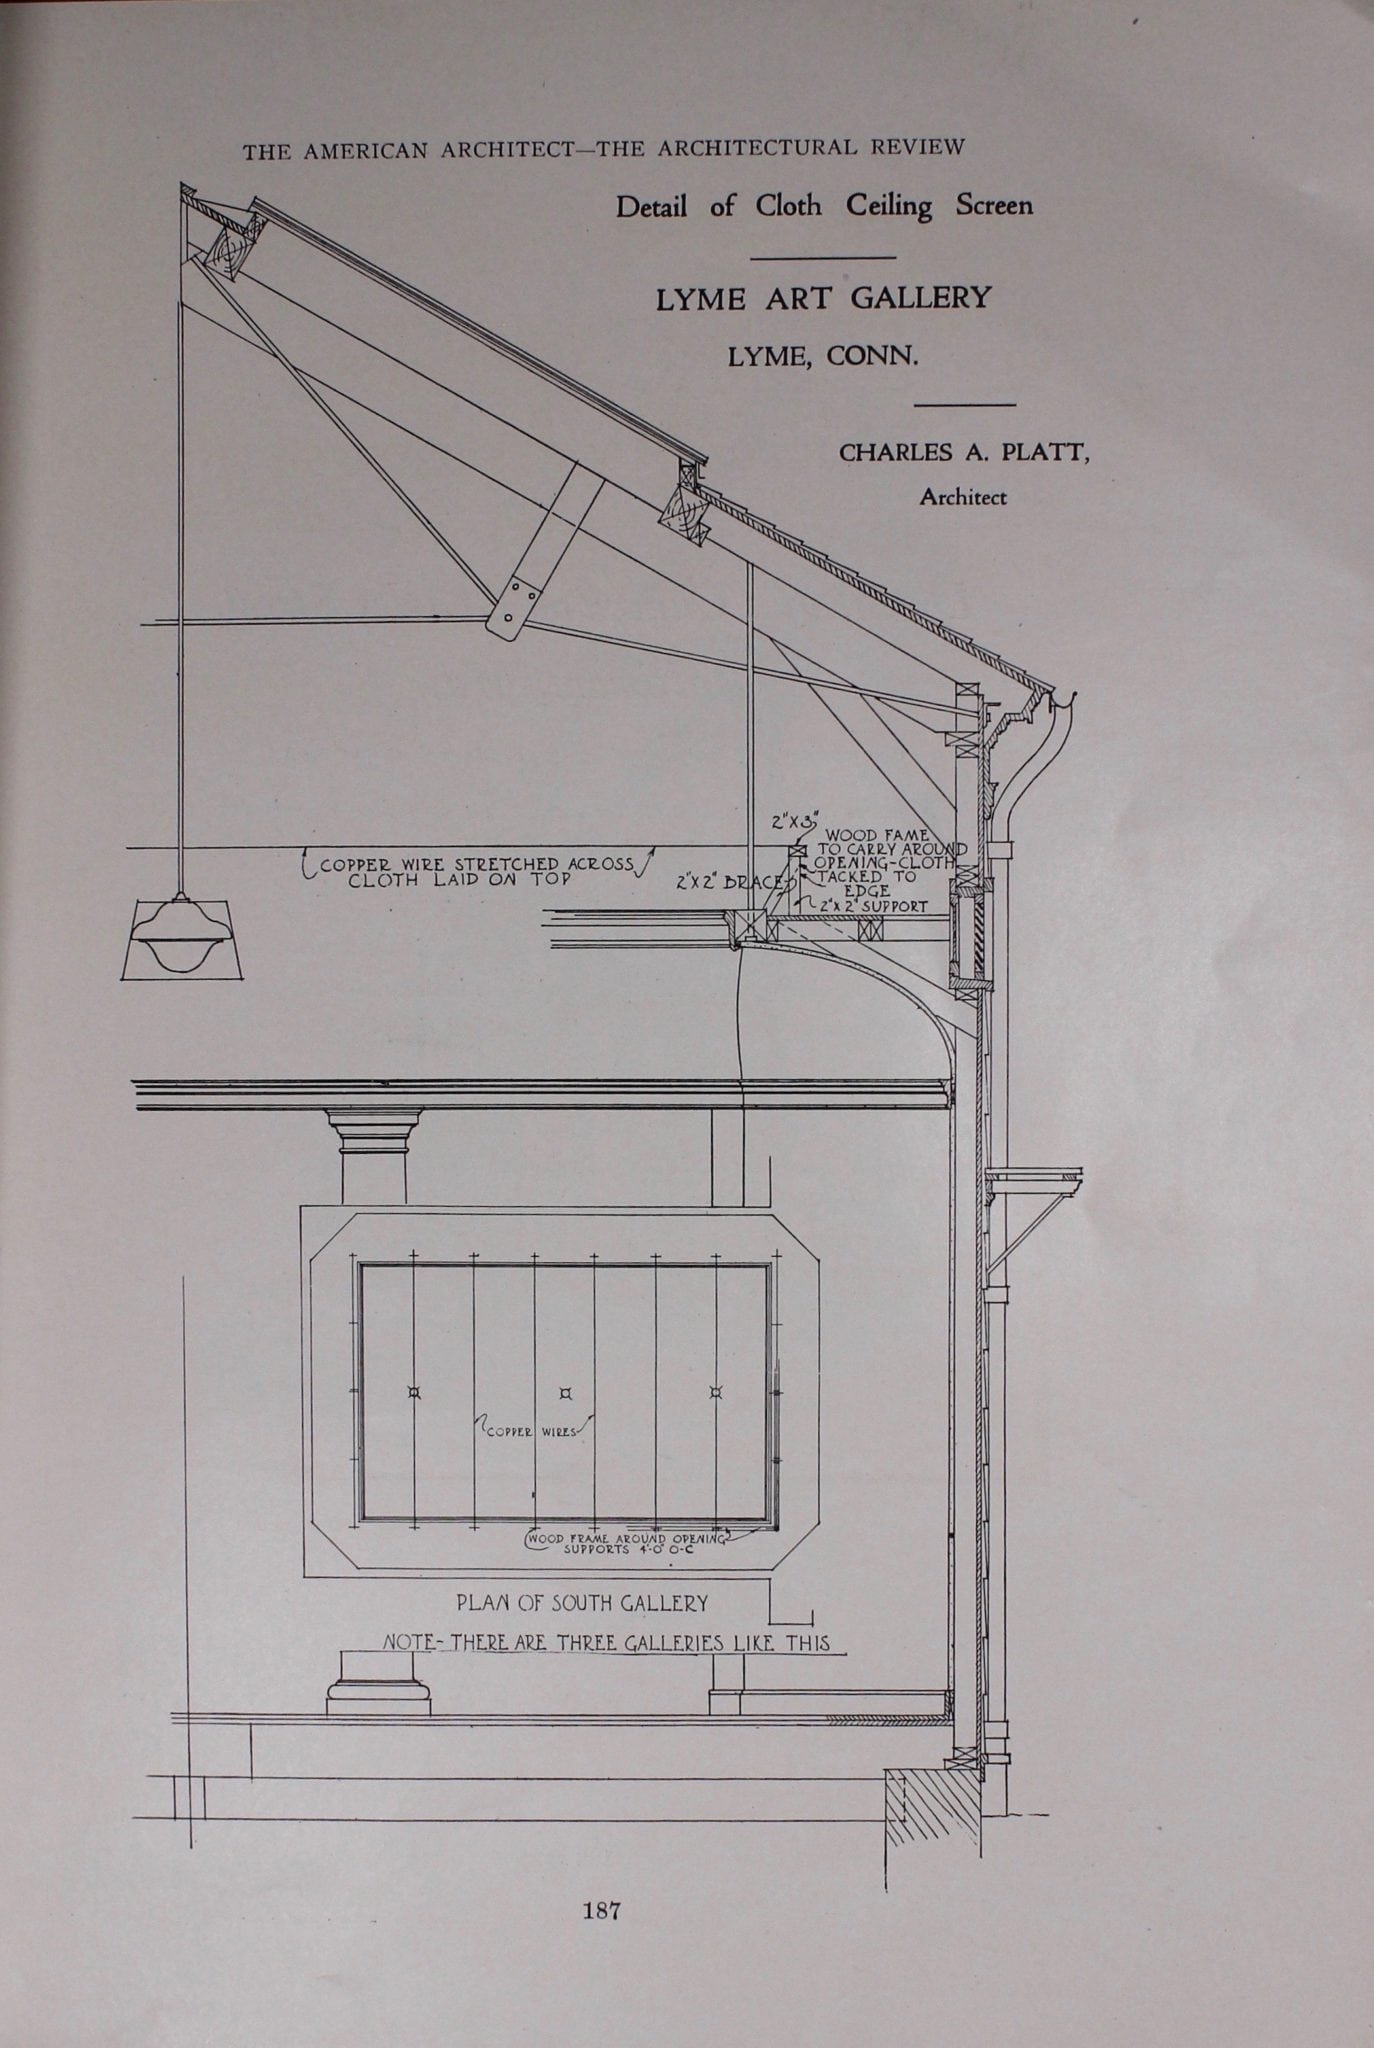 Glimpses A Look At The Lyme Art Association Florence Griswold Museum Schematic Wiring Diagram September 2010 Section Of Gallery From American Architect And Architectural Review 14 1921 Lhsa Fgm